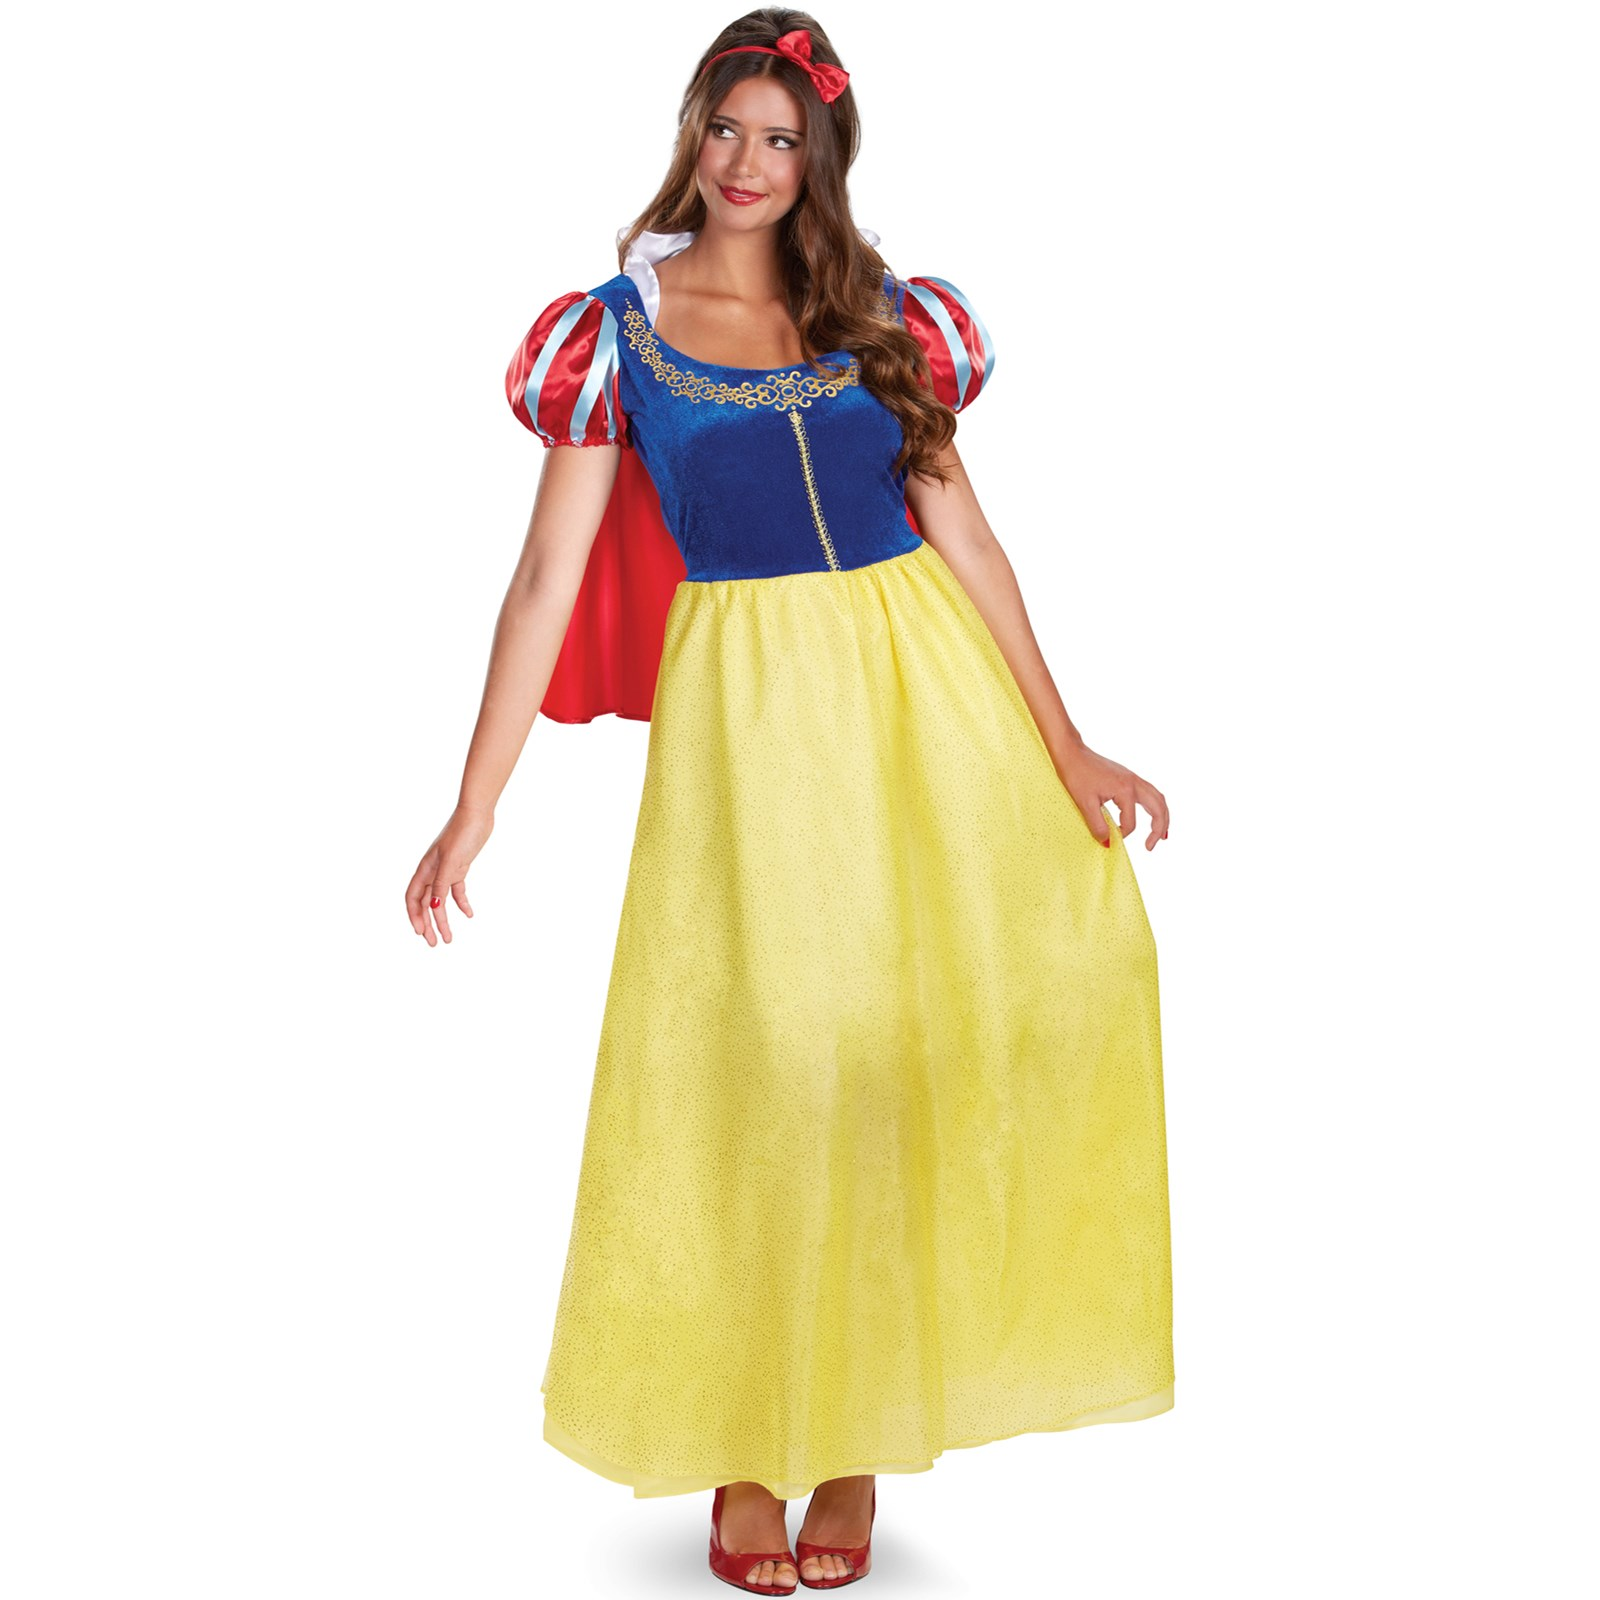 Disney princess gowns for adults - Disney Princess Womens Snow White Deluxe Costume